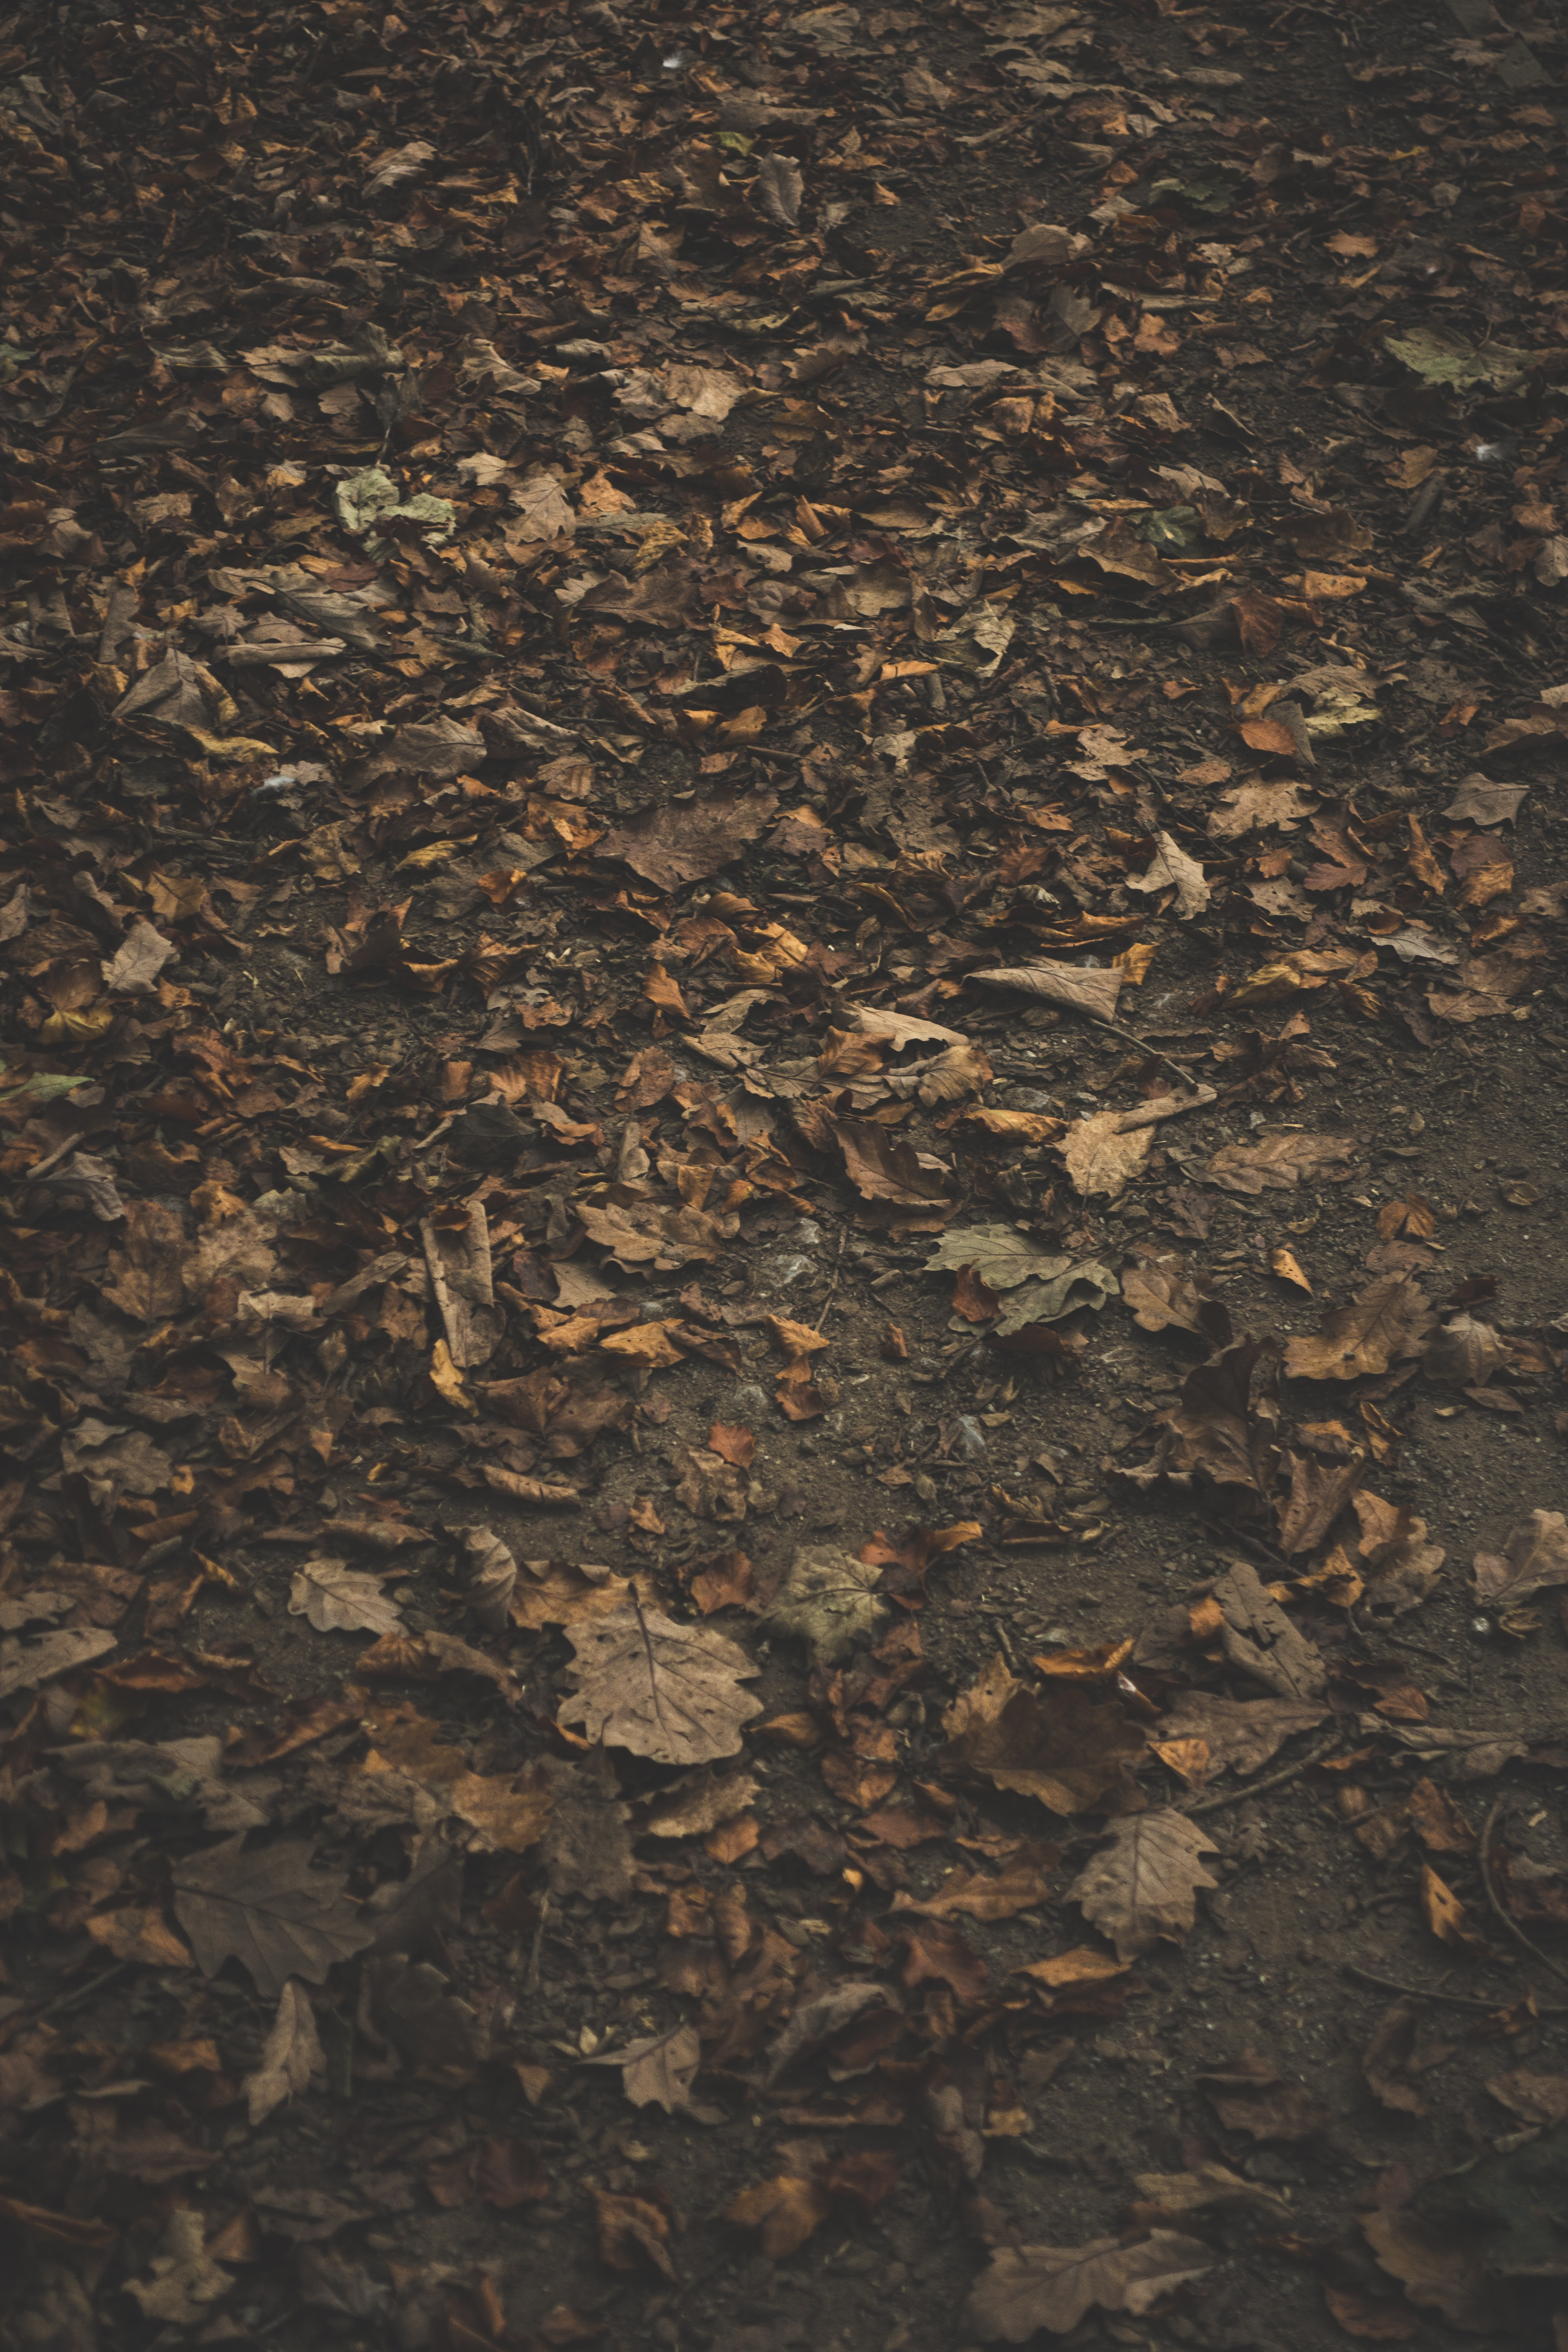 closeup photo of brown leaves on ground